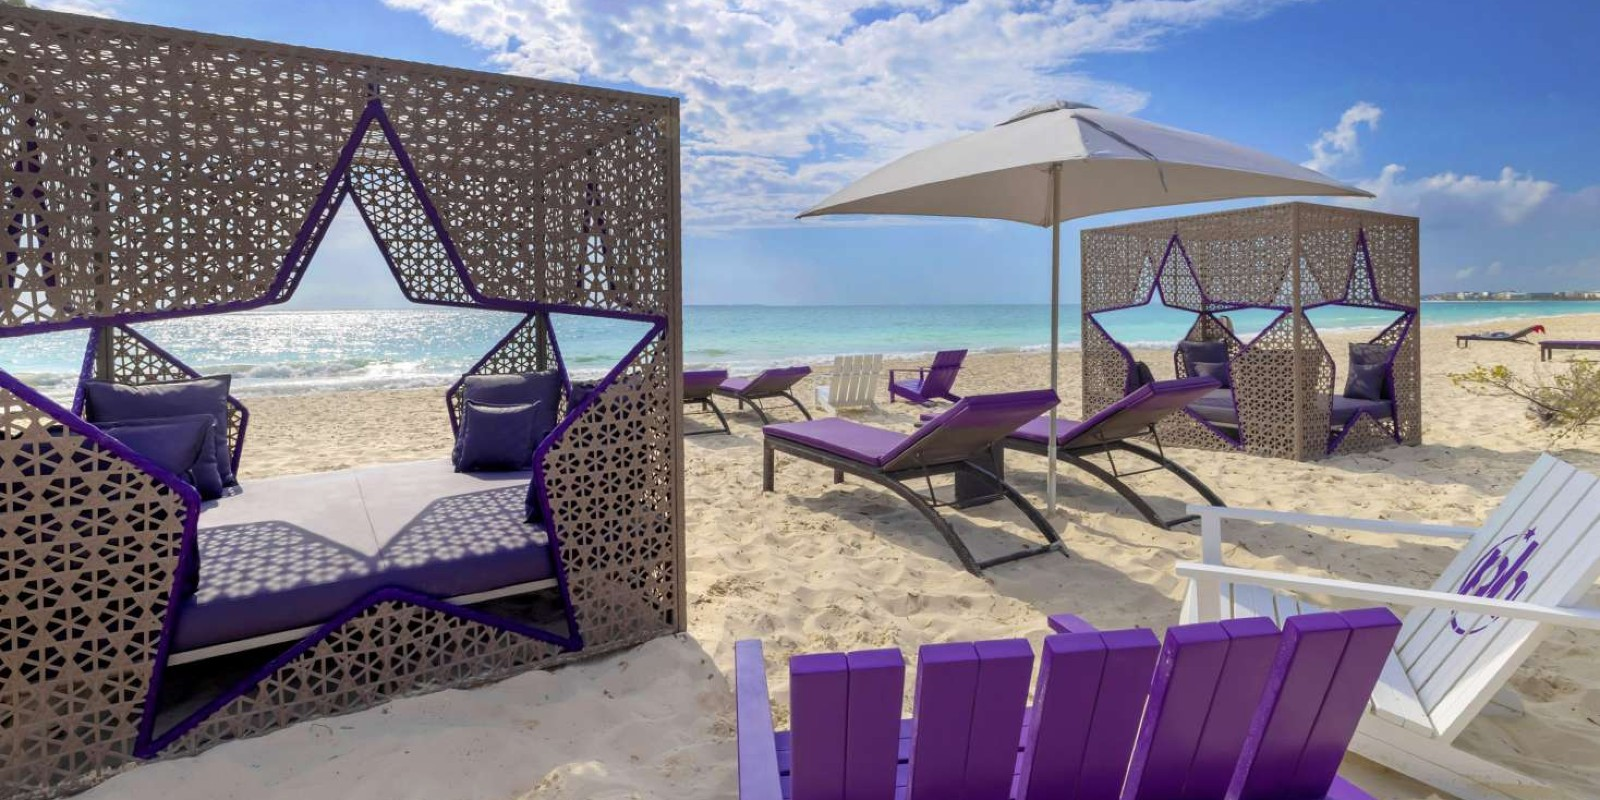 Travel blog: 16 Reasons Why Planet Hollywood Cancún Is In A World Of Its Own